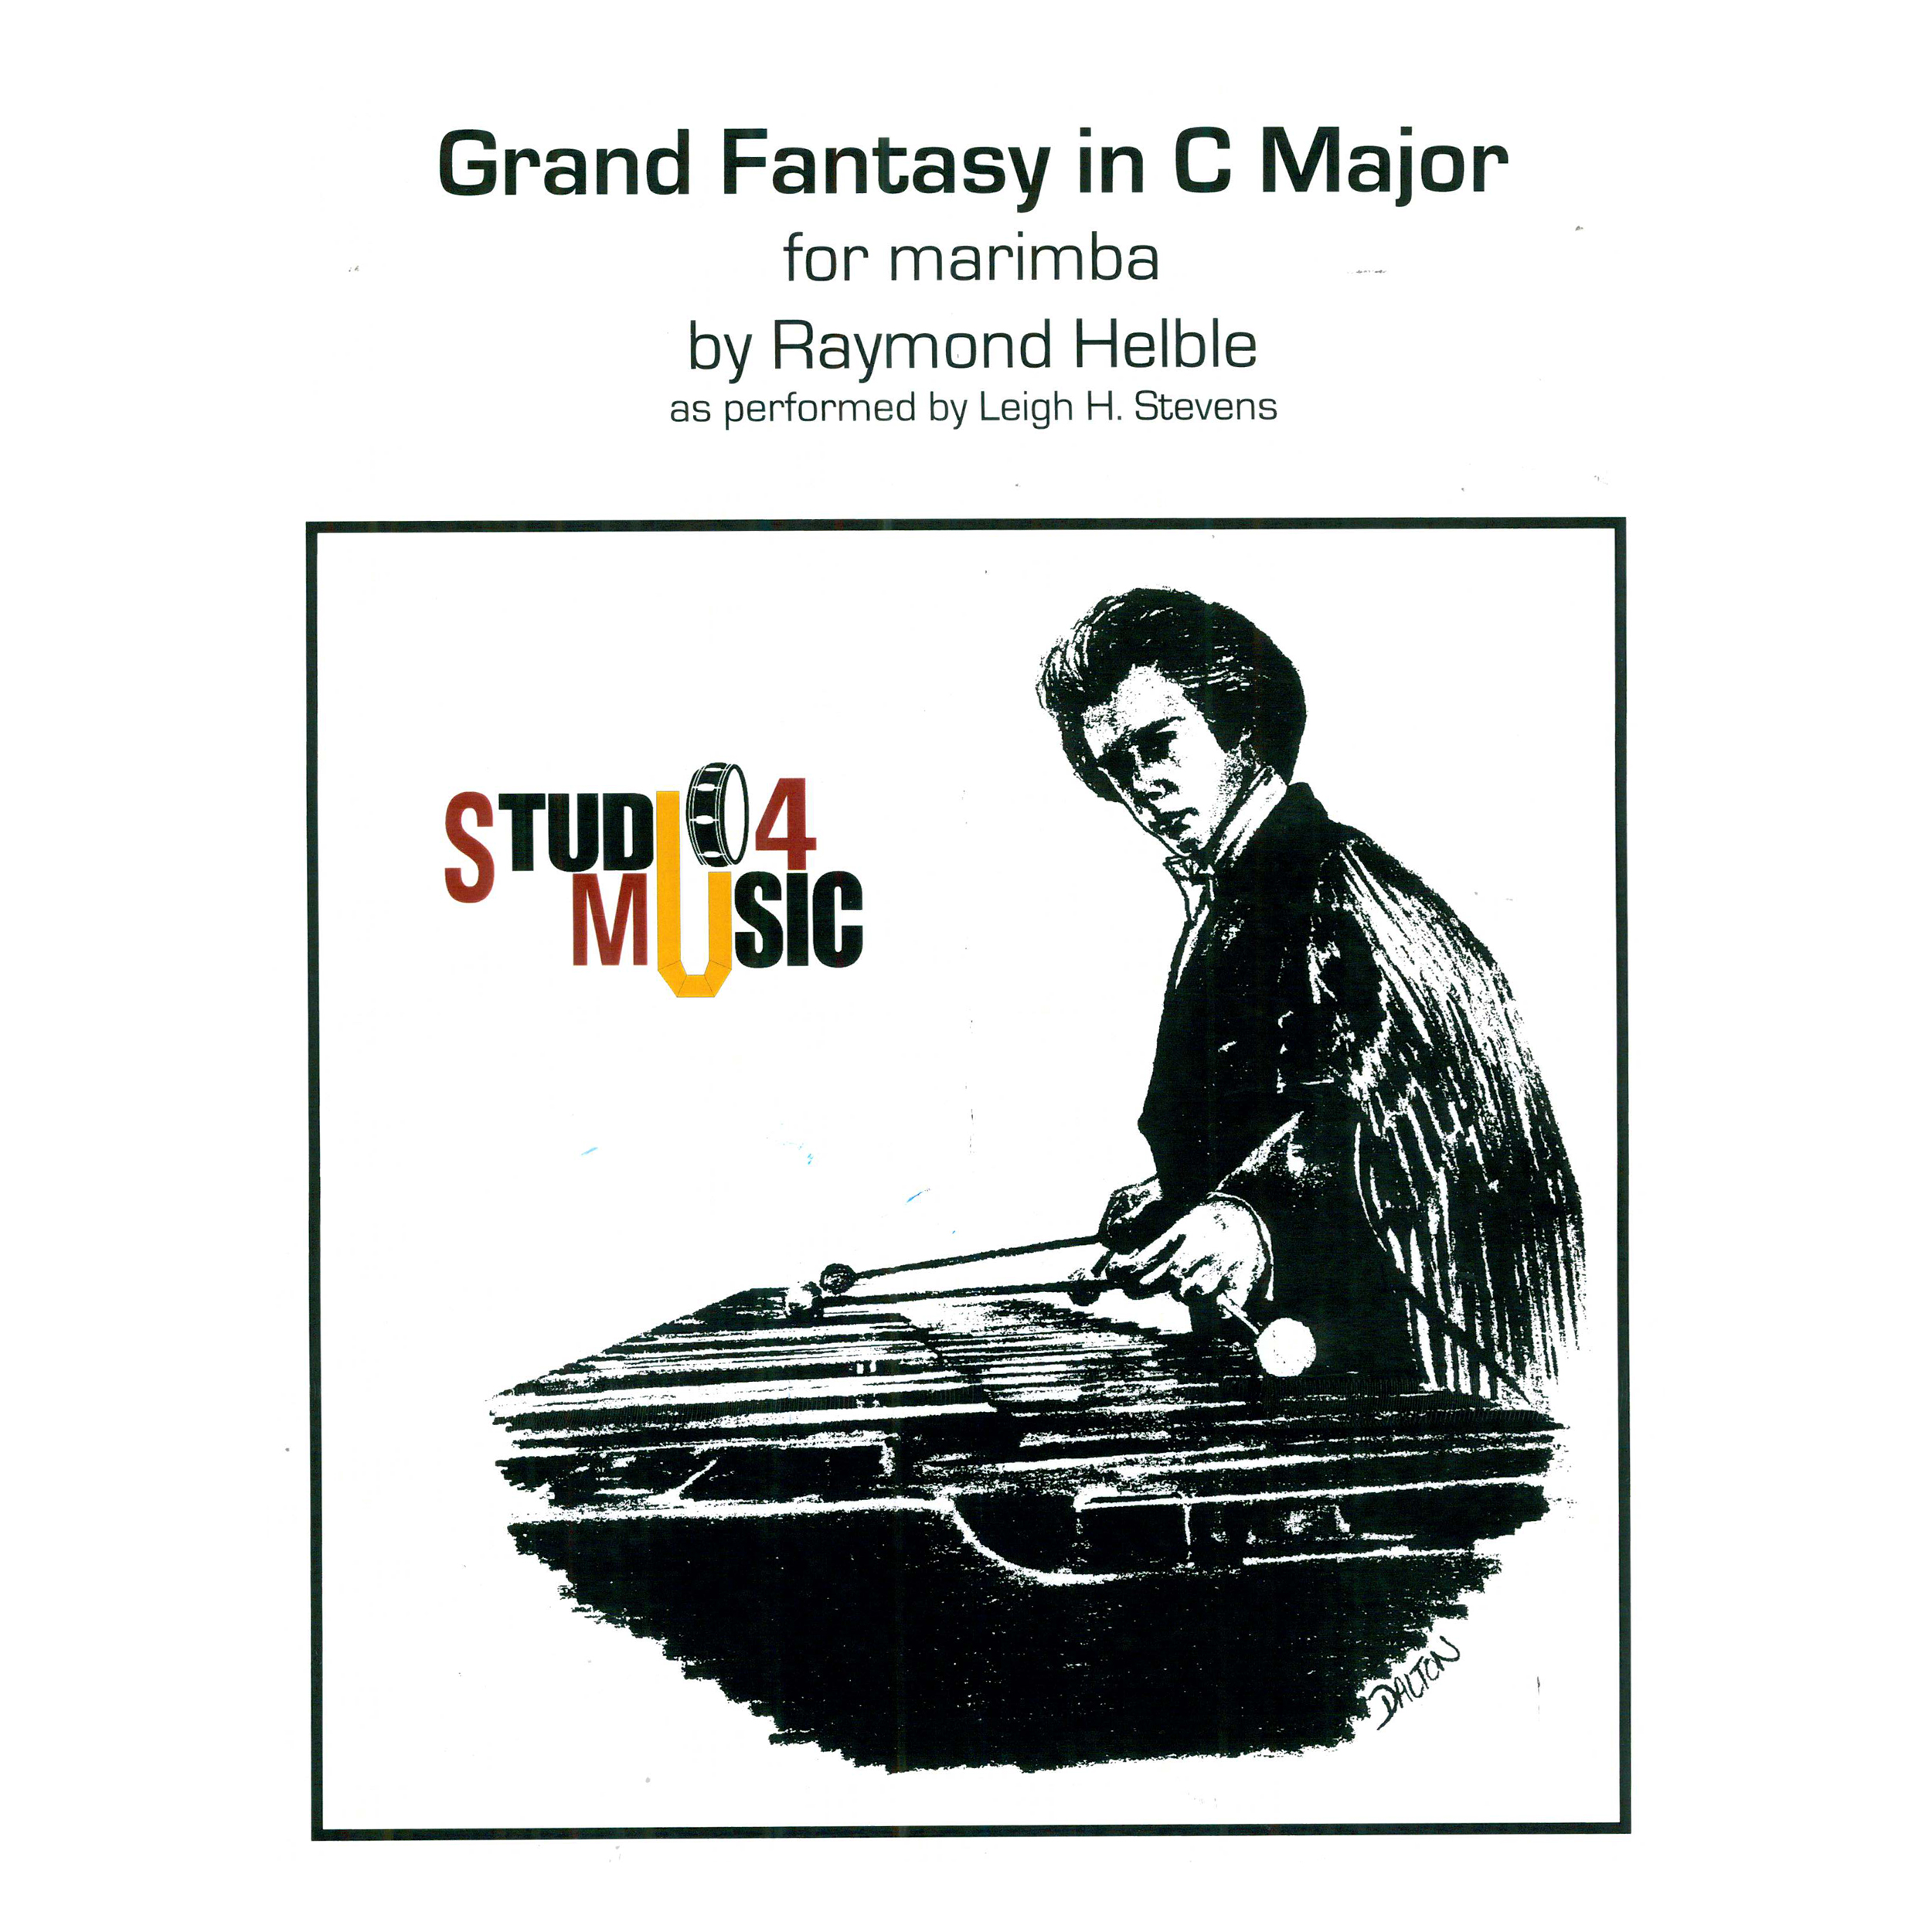 Grand Fantasy for Marimba in C Major by Raymond Helble